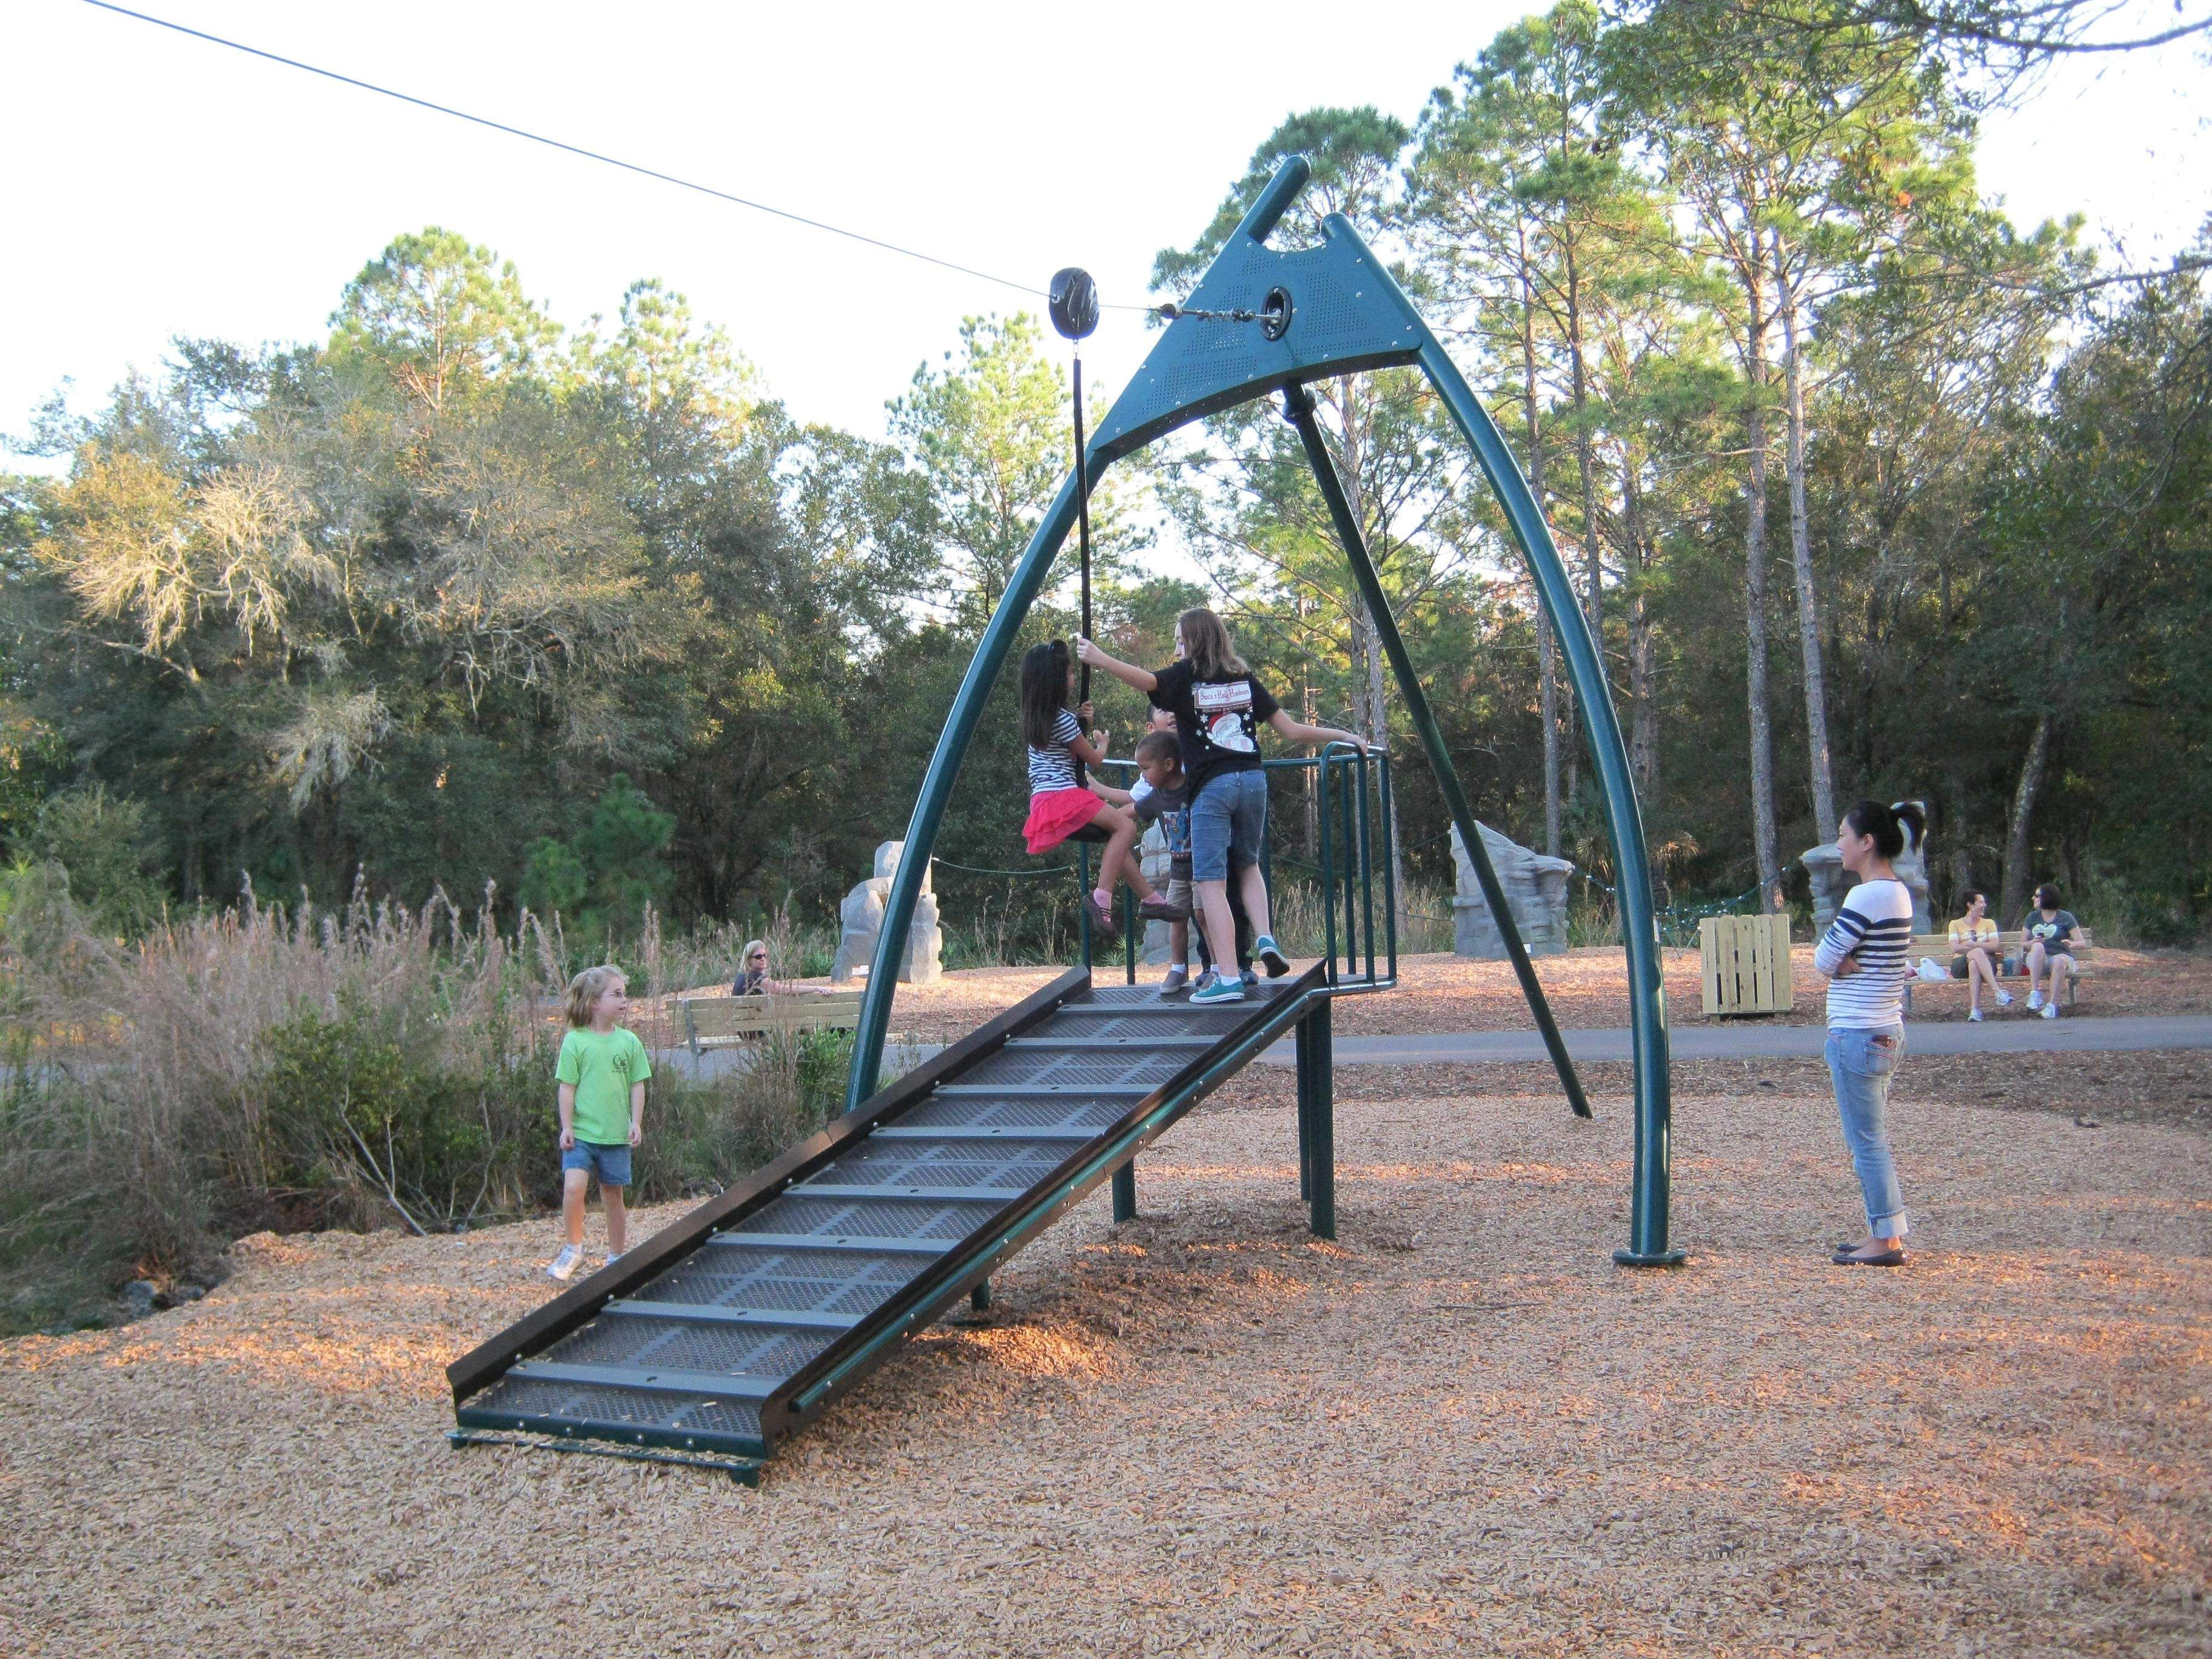 the zip line at new tampa nature park is a featured attraction for